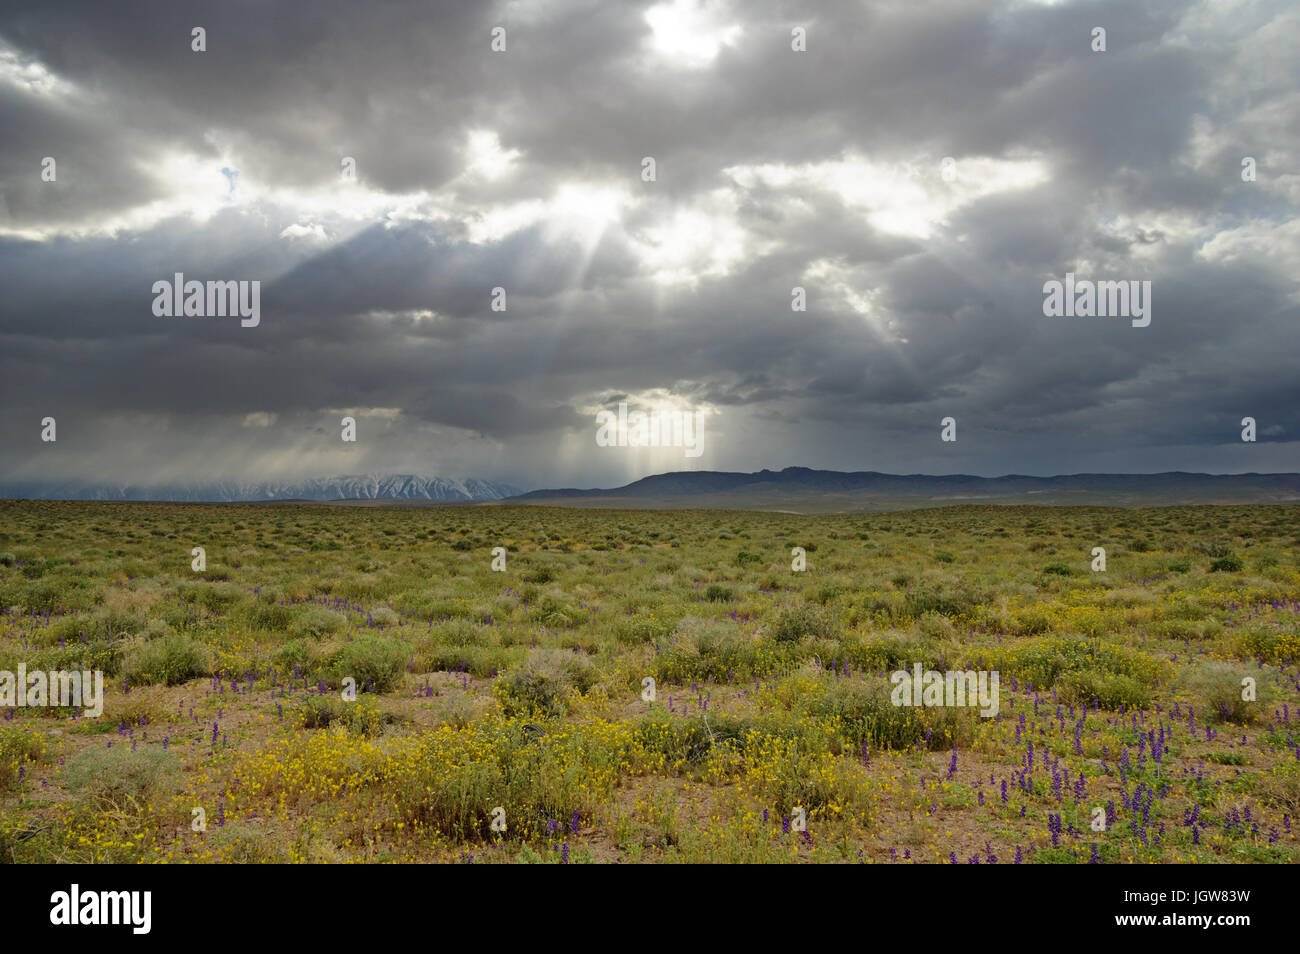 dramatic sky with sunrays over a desert field with wildflowers - Stock Image